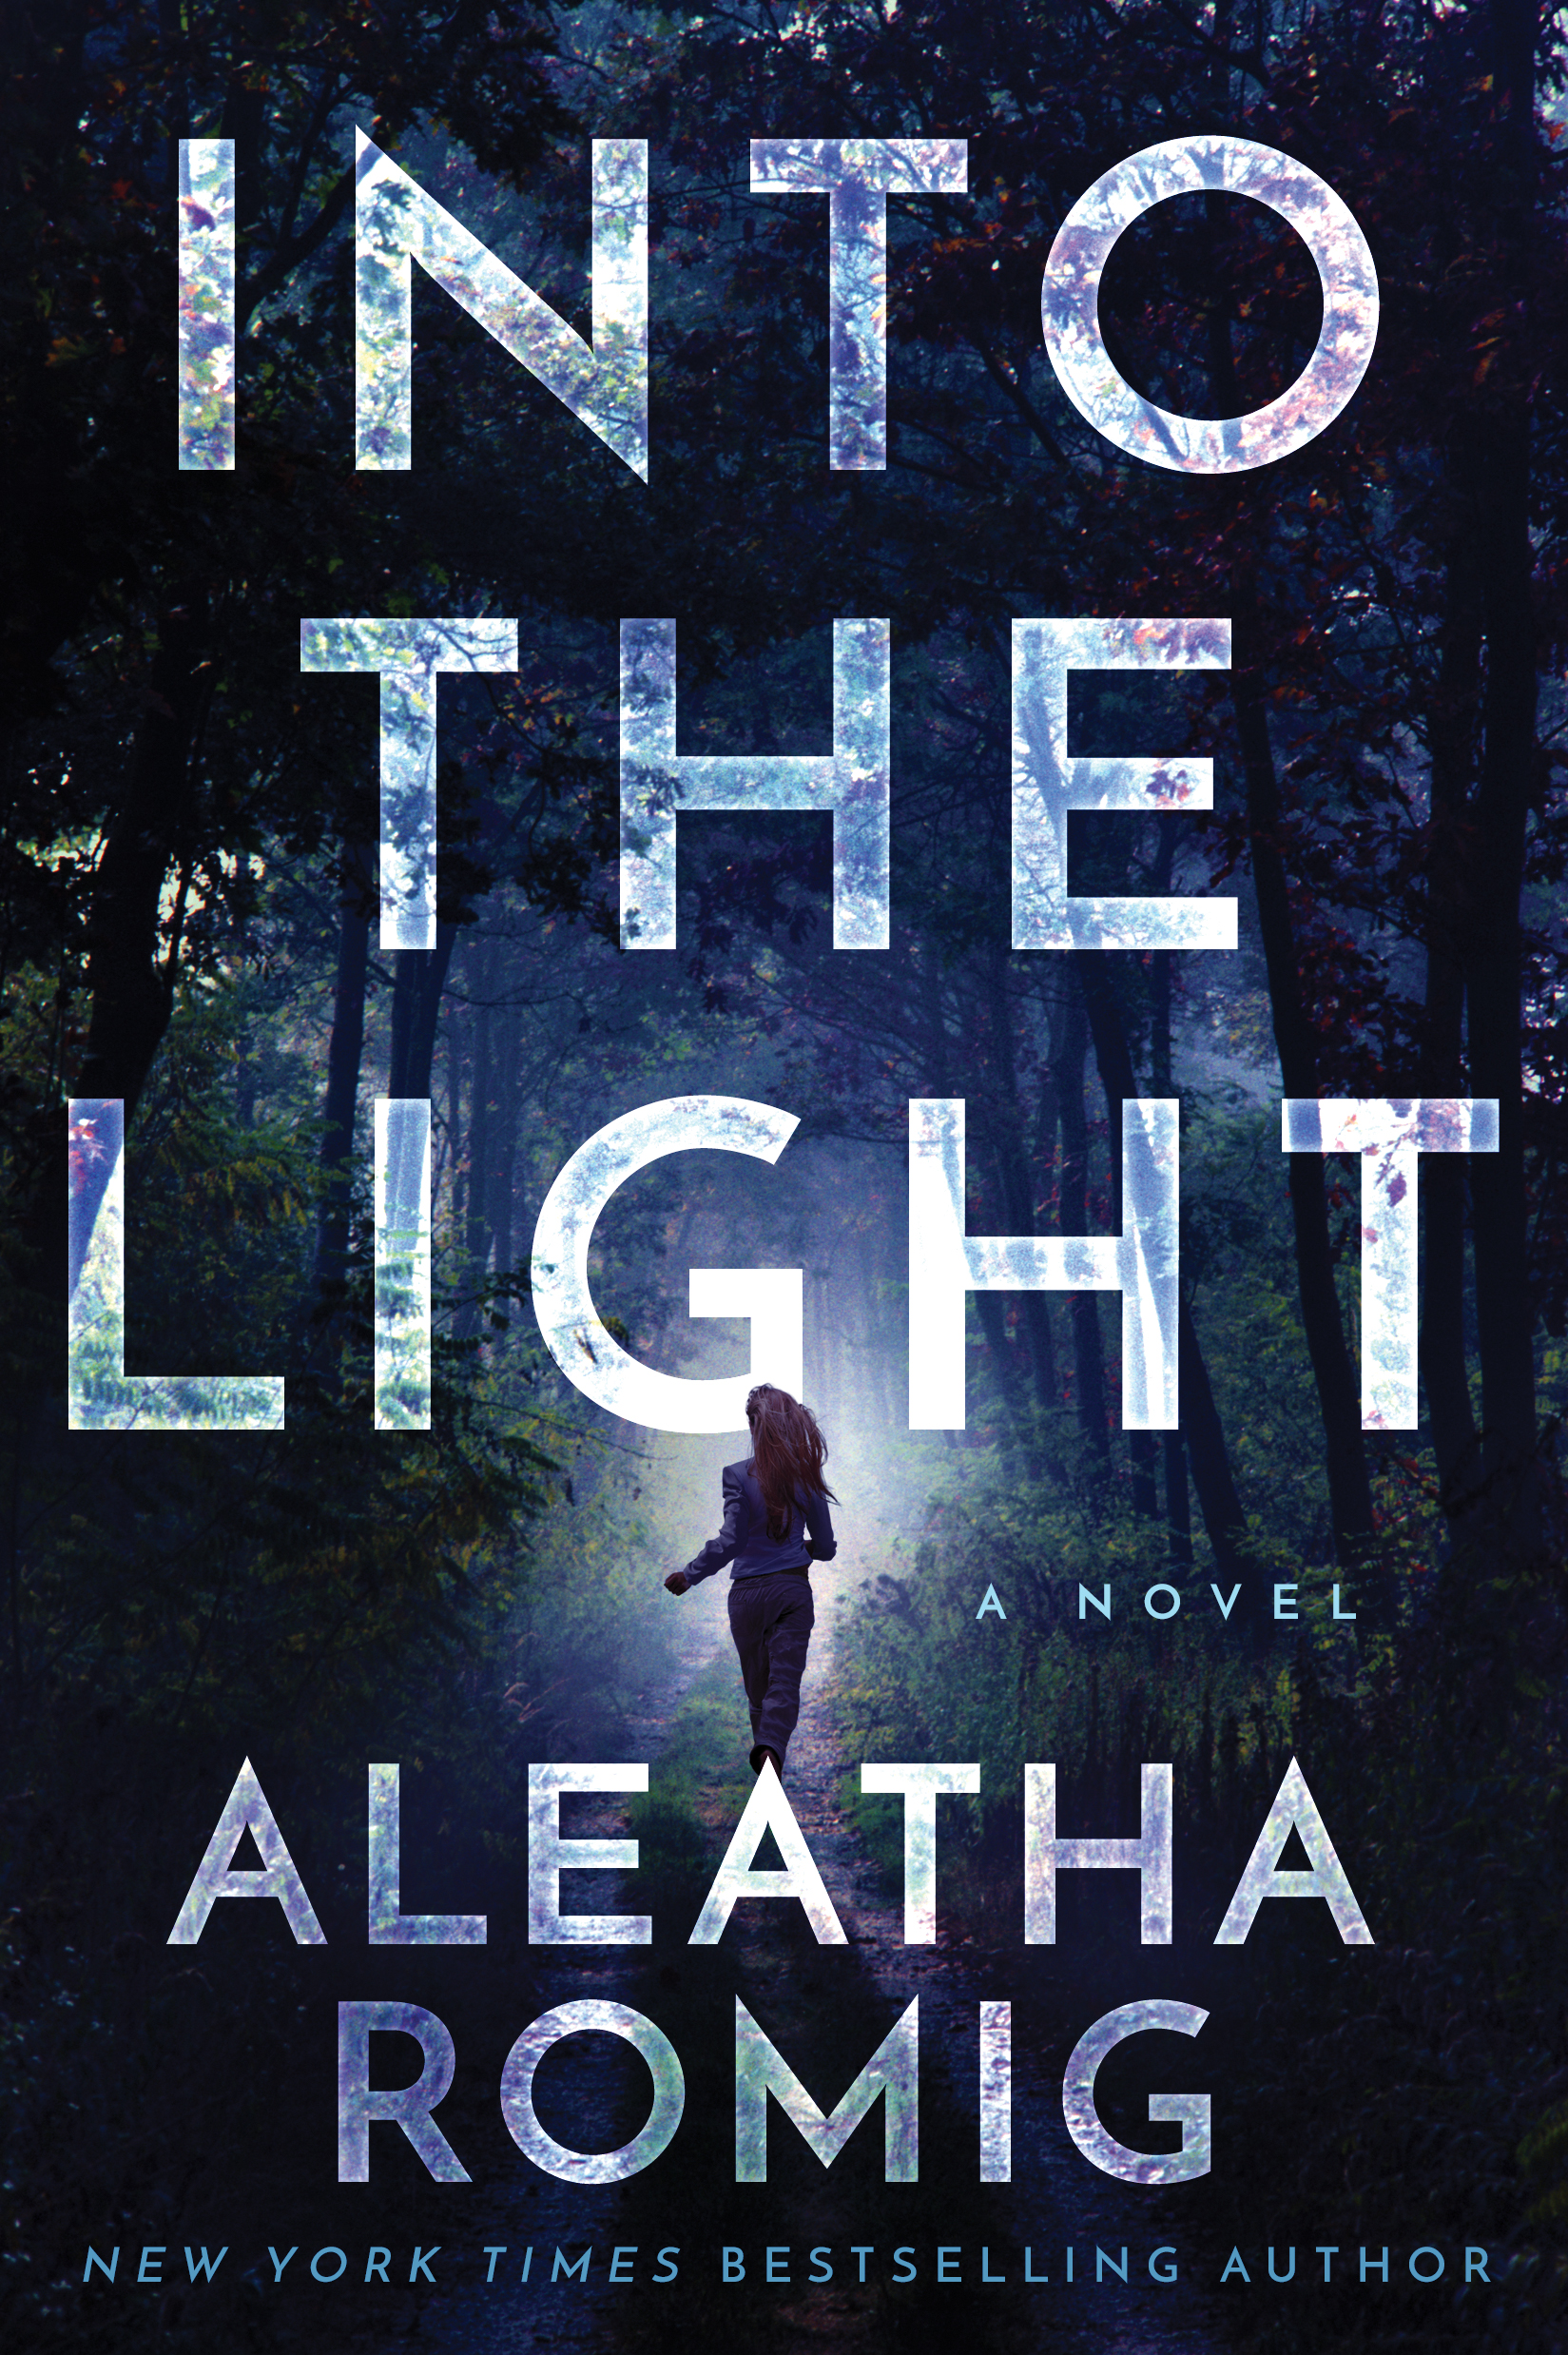 REVIEW: Into the Light by Aleatha Romig